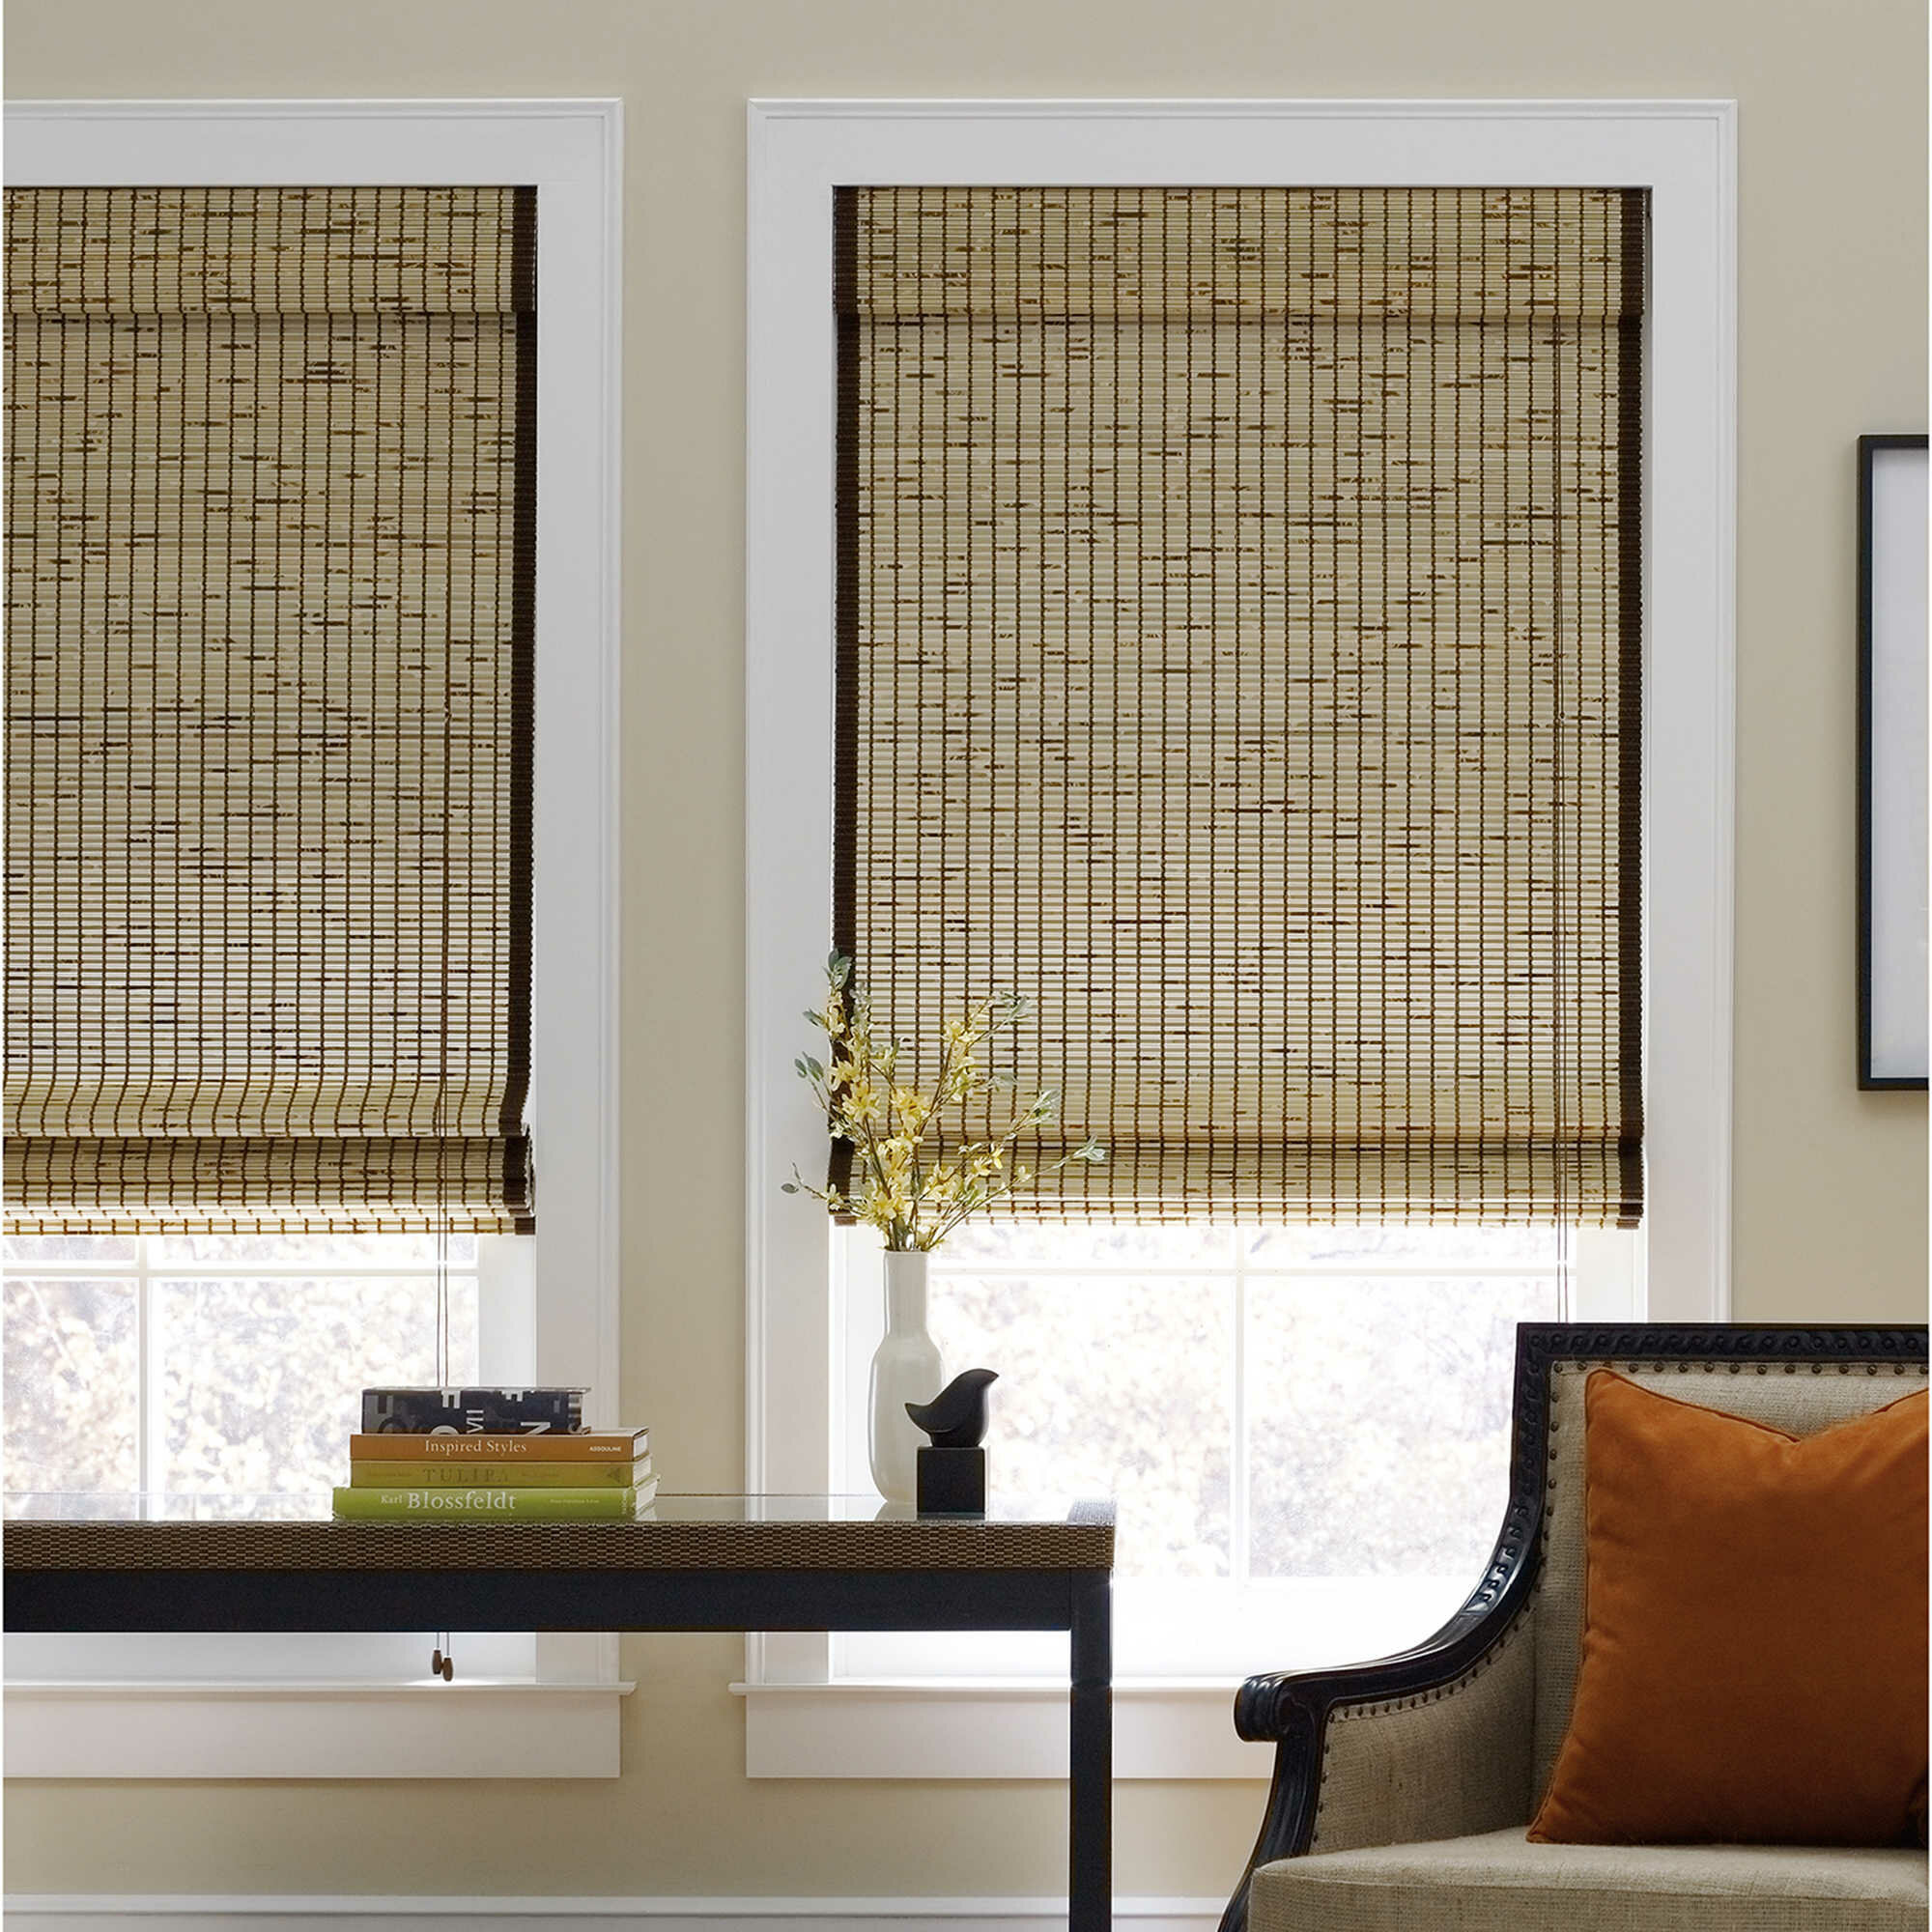 home bamboo roman on valance shade blinds free orders petite product shipping rustique over overstock inch height garden with arlo